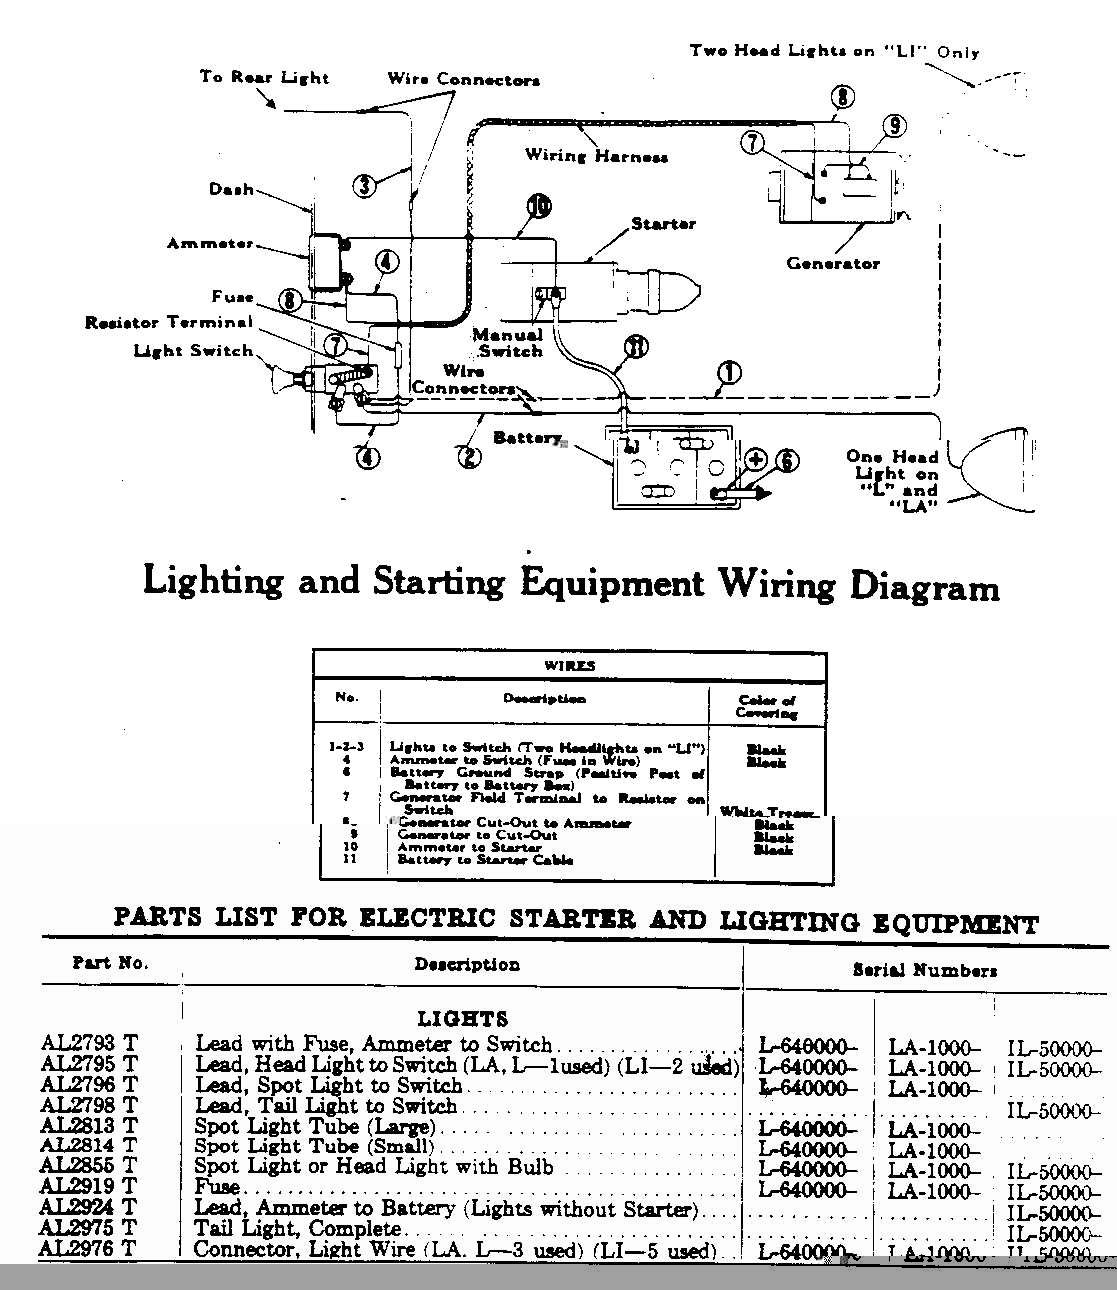 rusty acres ranch john deere wiring diagram for h john deere 425 wiring diagram vintagetractors.com